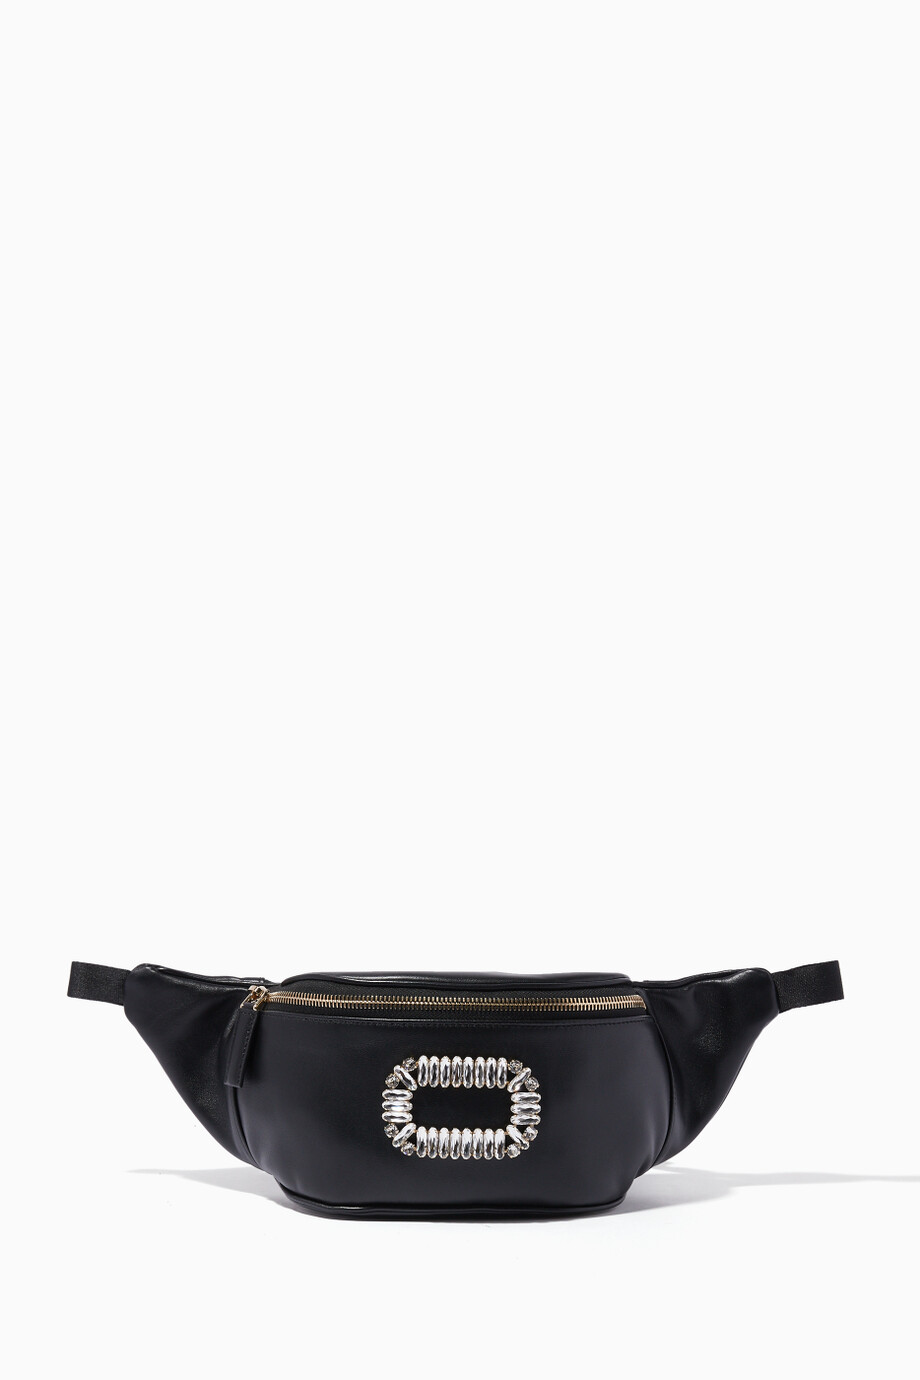 Shop Roger Vivier Black Black Belty Viv Belt Bag for Women  b102f73b78f35